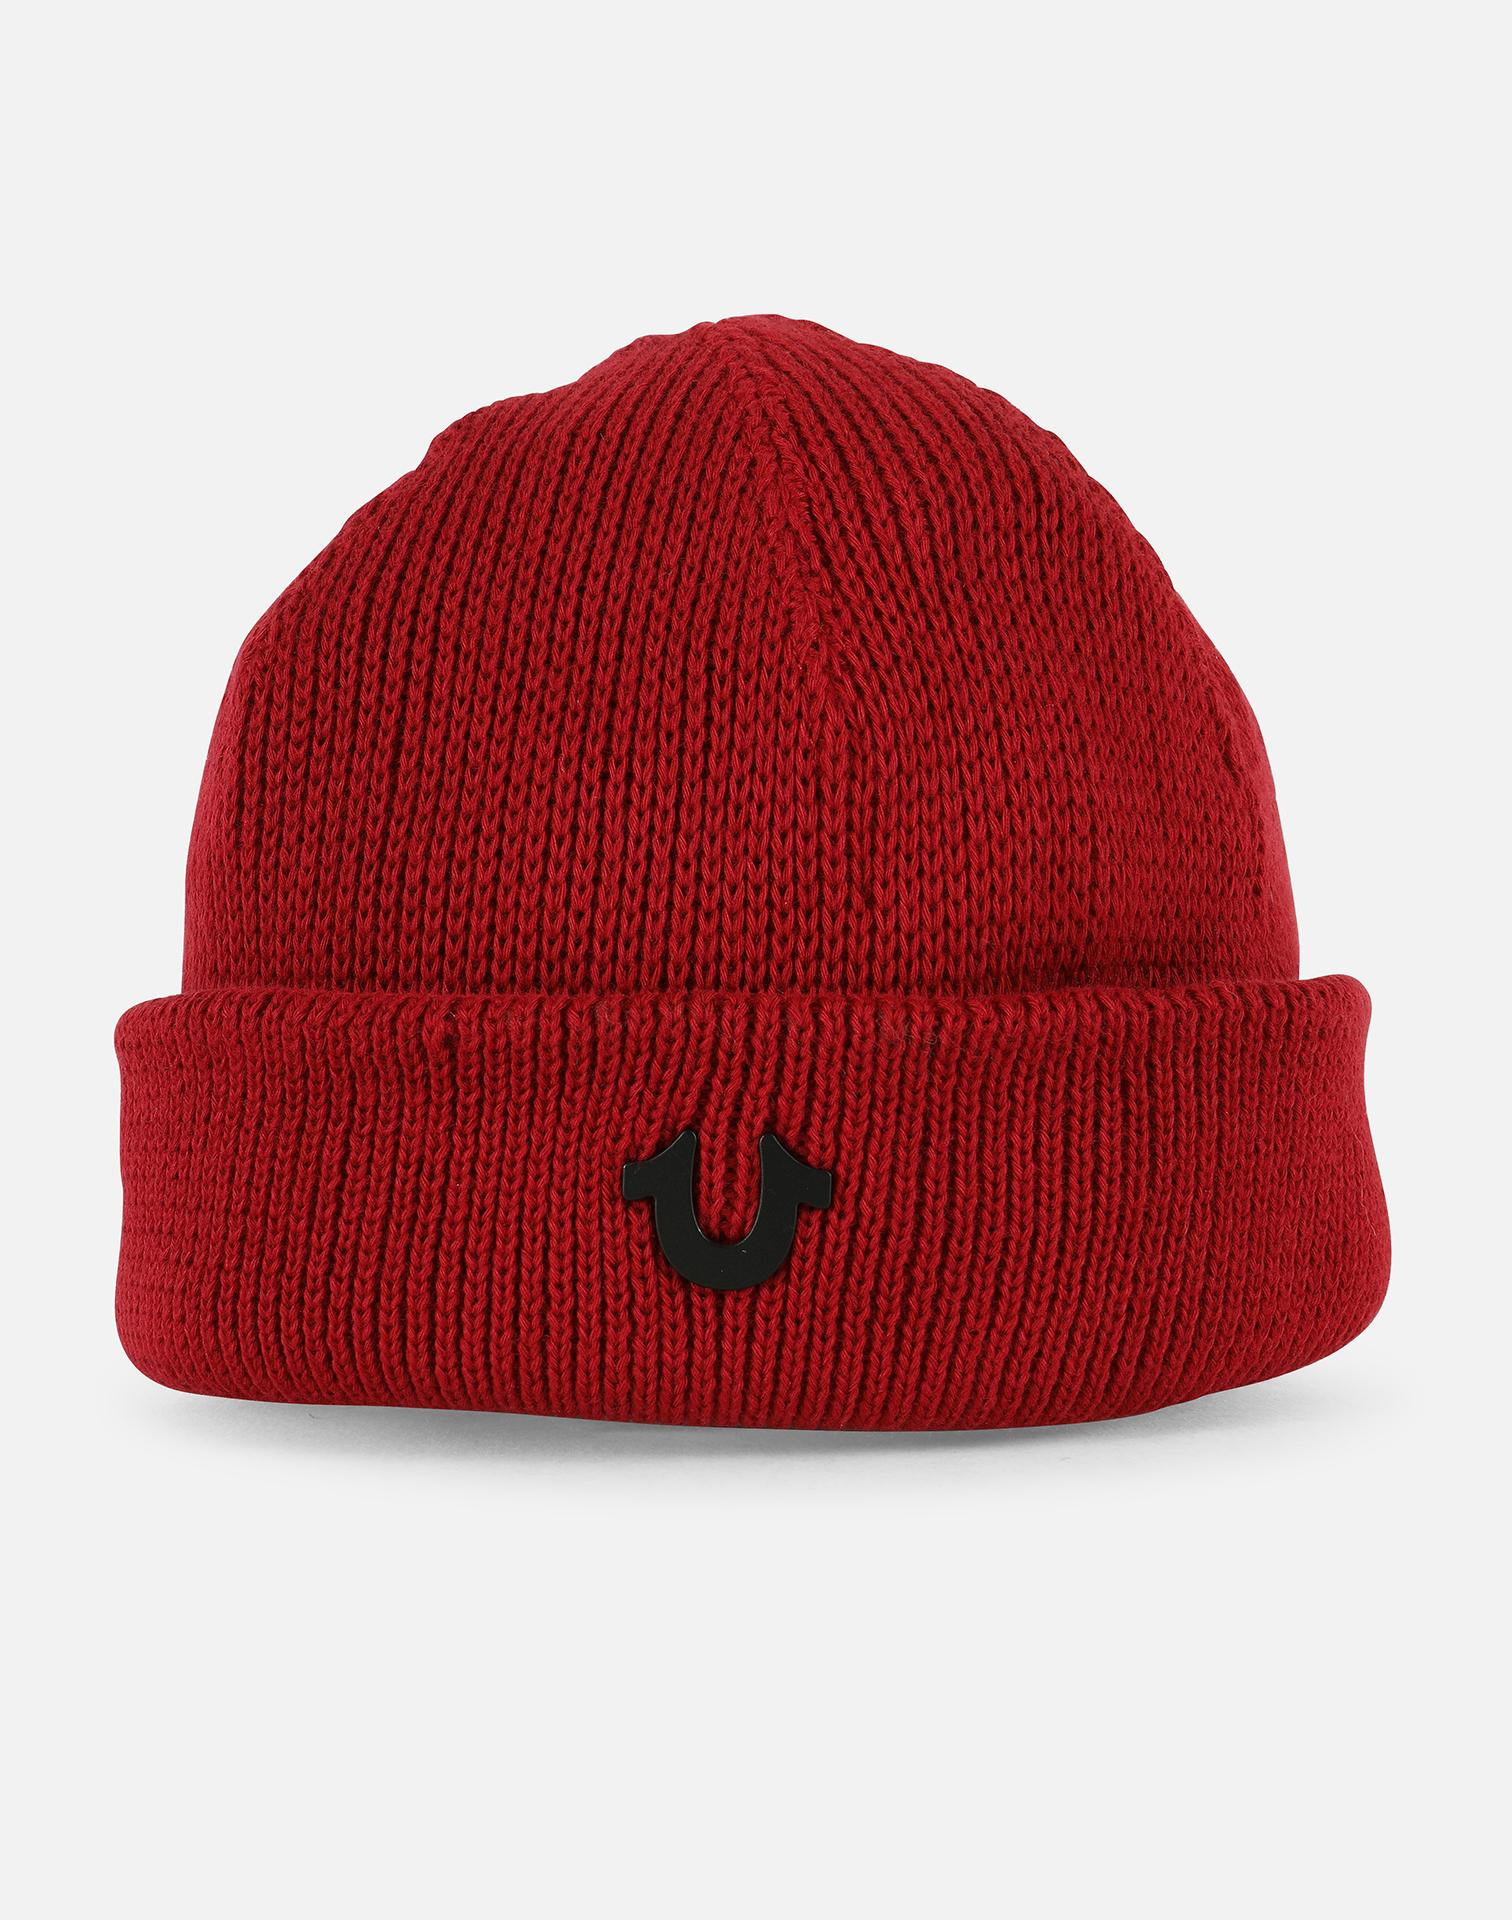 eacc5999a Men's Red Short Ribbed Knit Watchcap